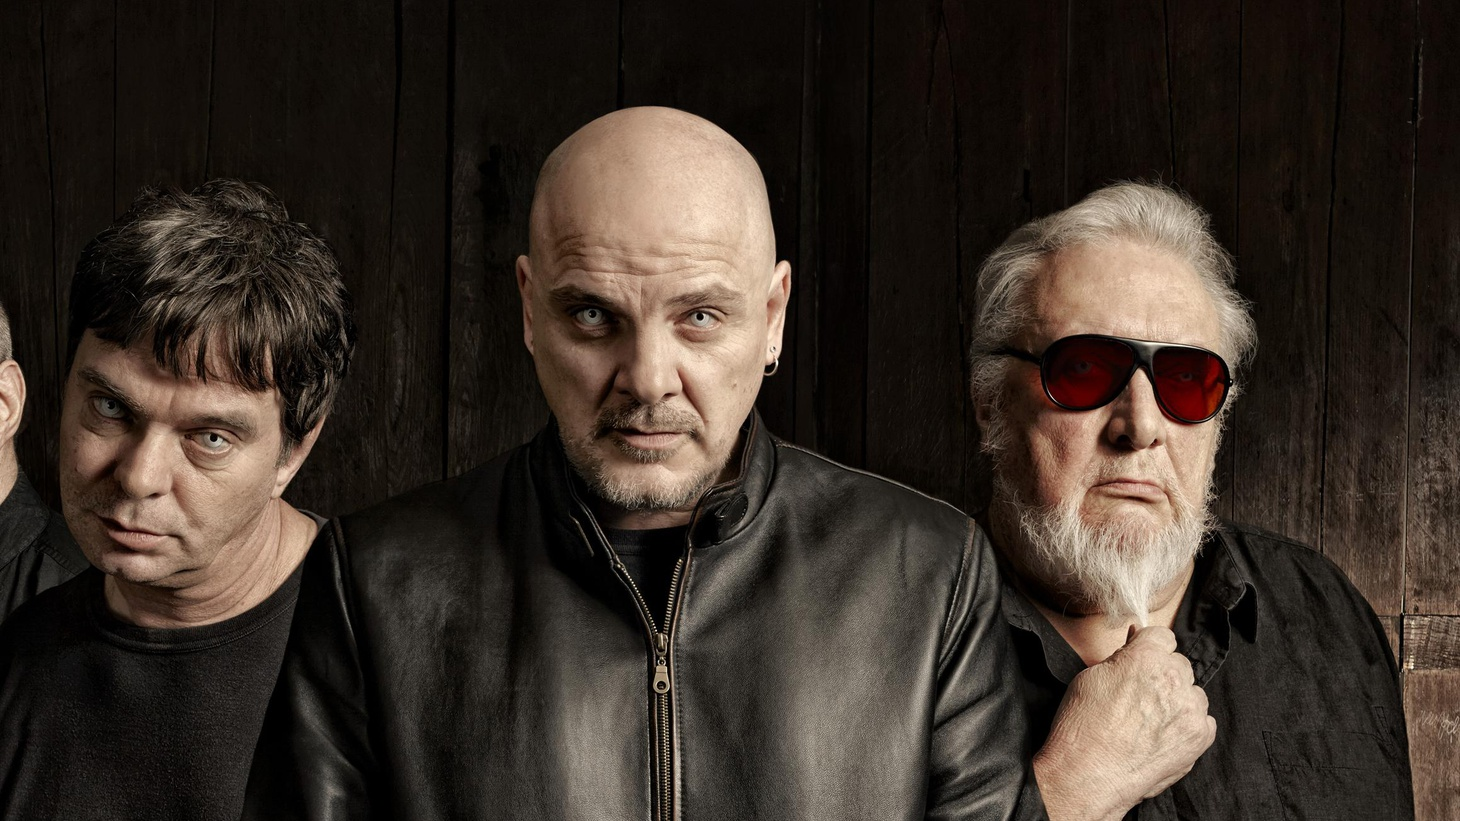 The Stranglers are veterans of the British Punk scene who have been together through four decades, 17 albums and 24 top hits.